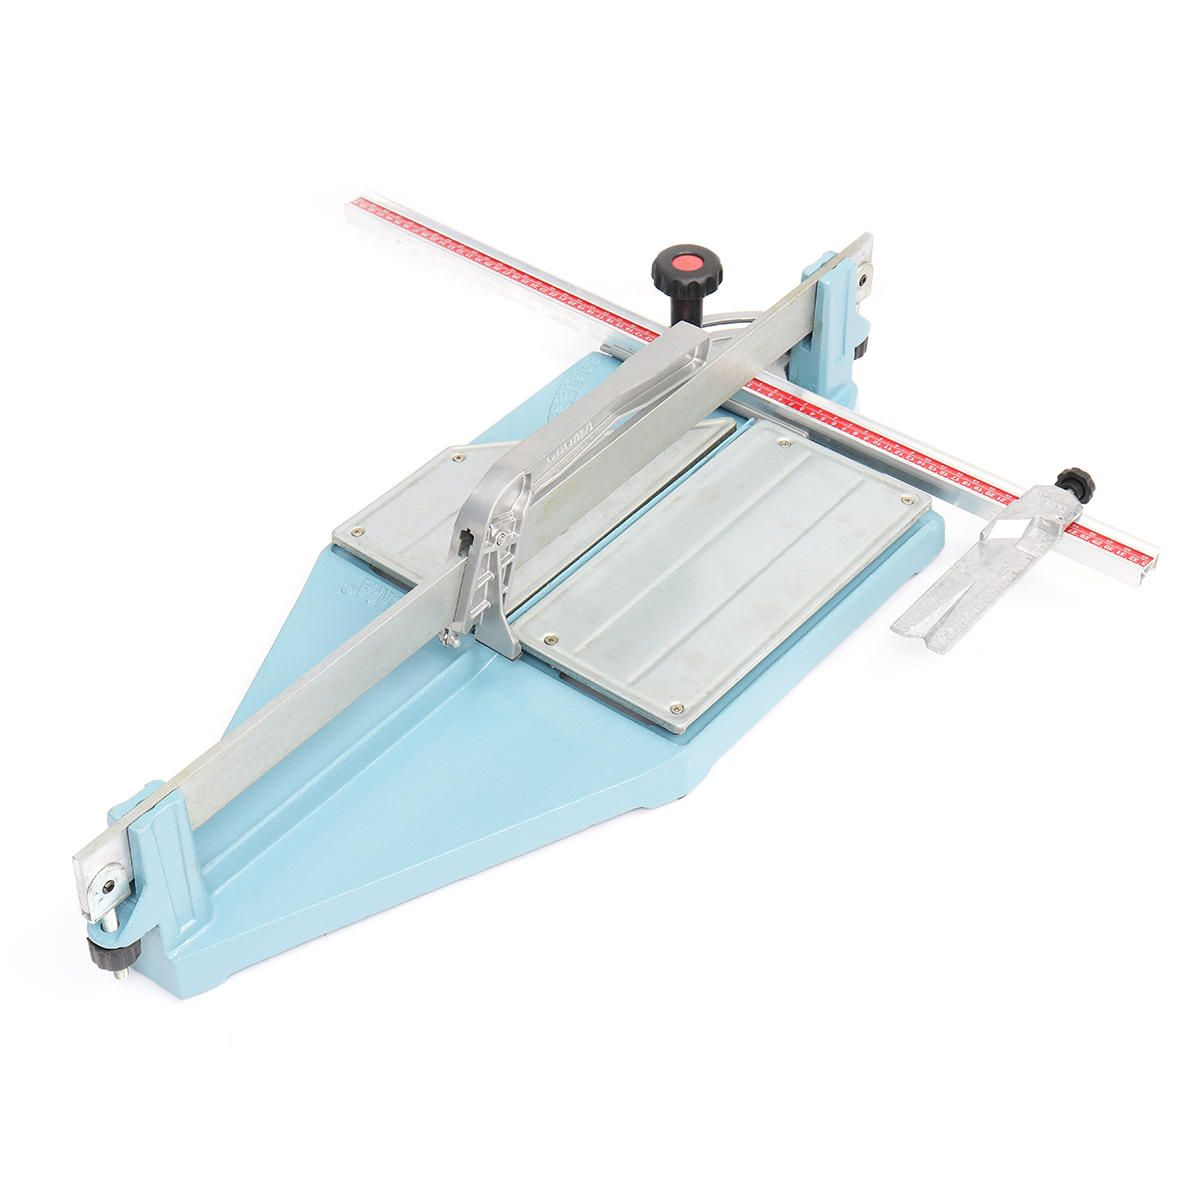 238 88 60cm Manual Desktop Tile Cutter Home Cutting Machine Ceramic Blade Heavy Duty 60cm Manual Desktop Tile Cutter Home Cutting Mach Her Tiles